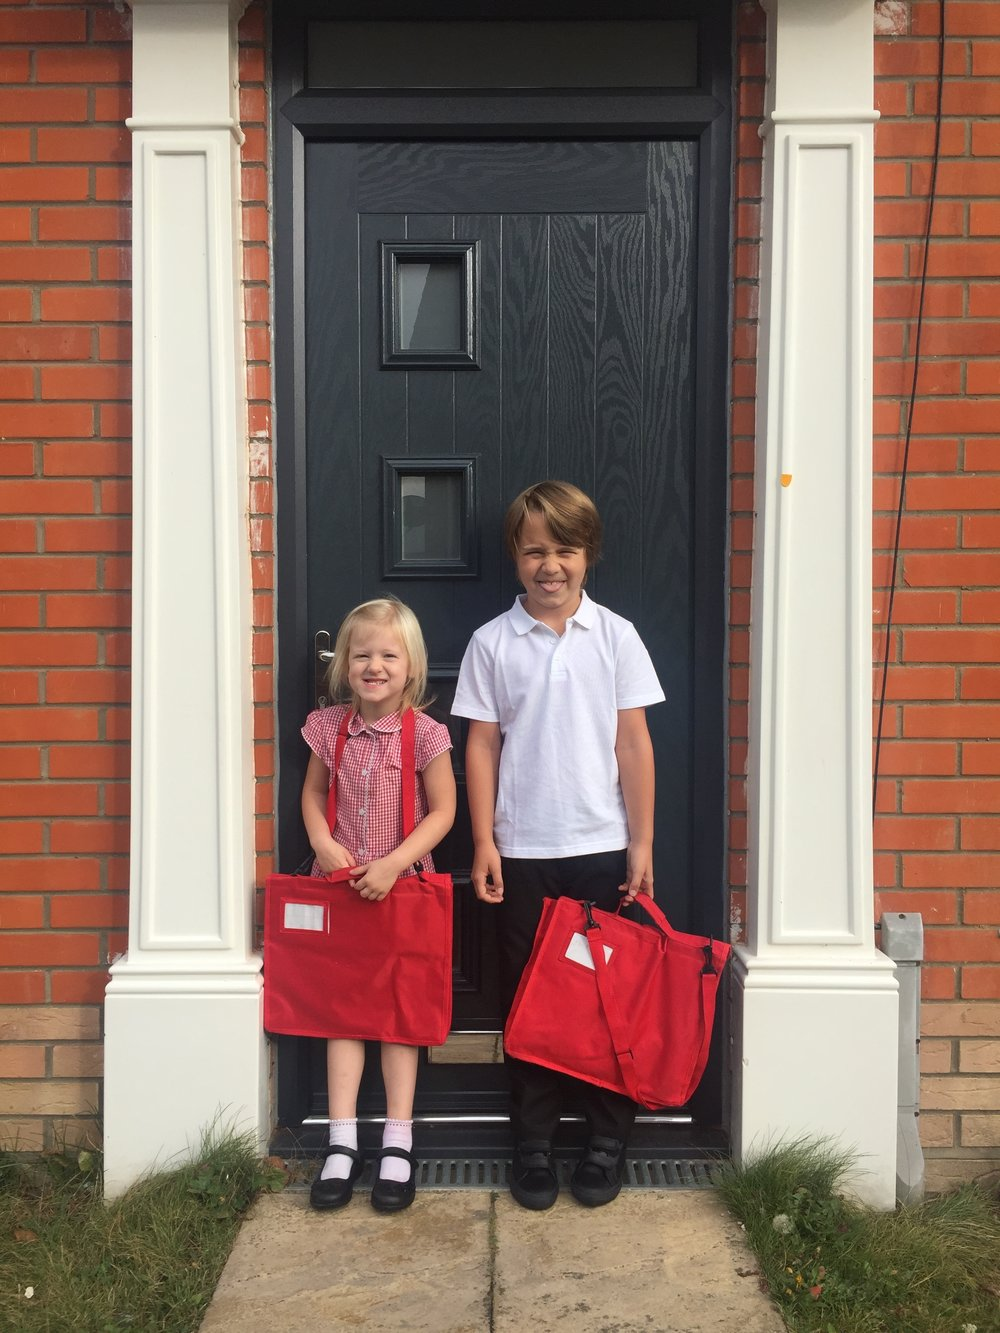 After a super school holiday (we squeezed loads of fun stuff in), with some bumps and bruises along the way, the kids are back into school and so far so good they seem settled and content.